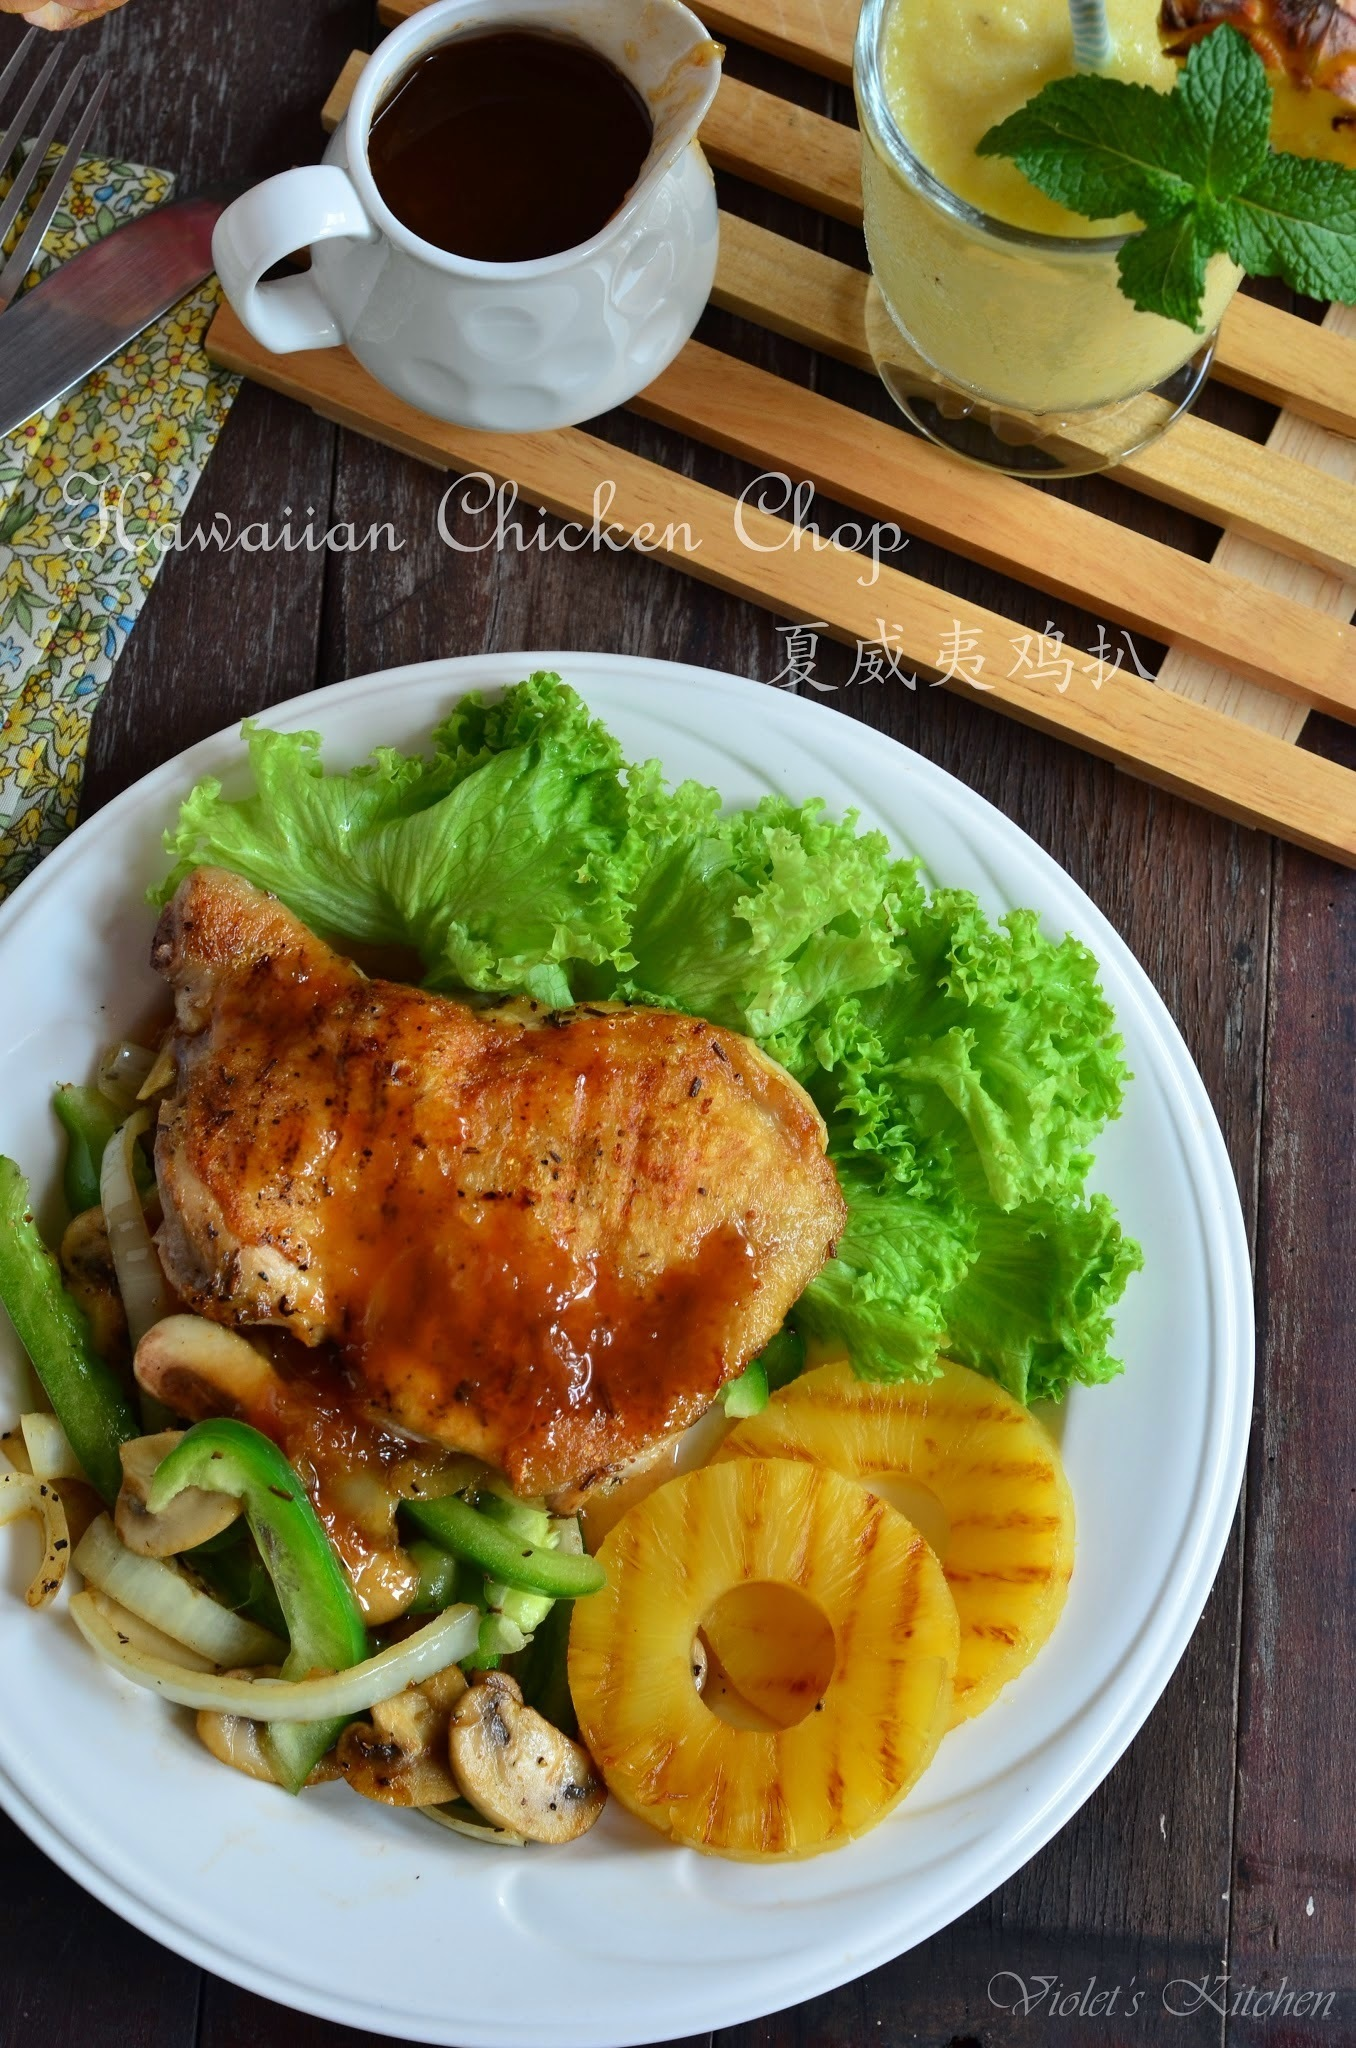 夏威夷鸡扒 Hawaiian Chicken Chop